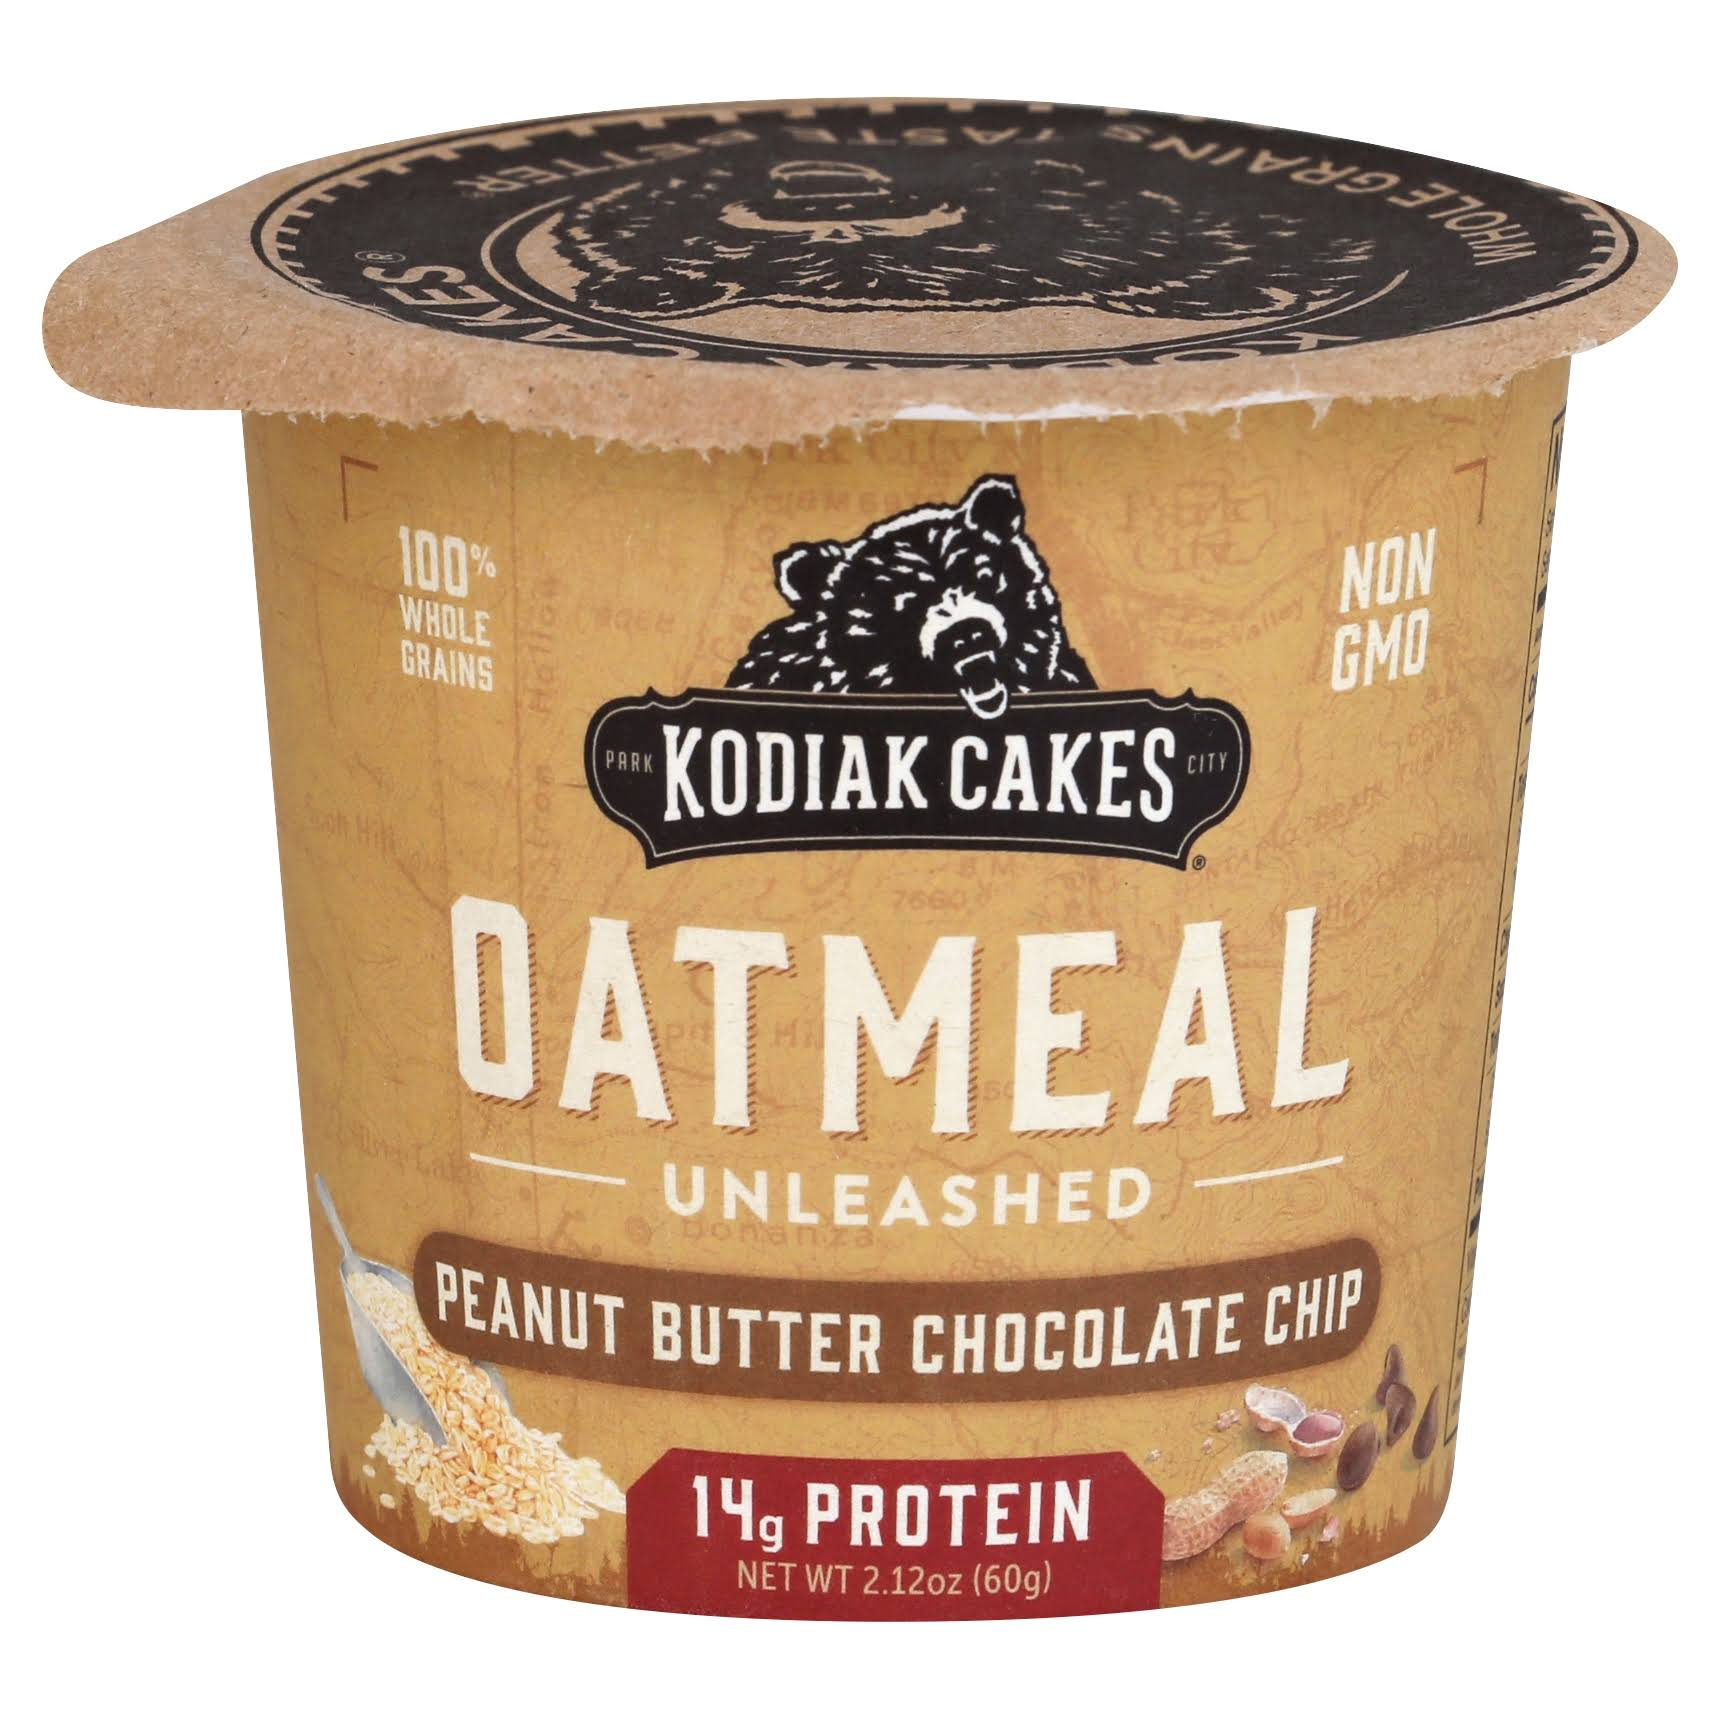 Kodiak Cakes Oatmeal Unleashed, Peanut Butter Chocolate Chip - 2.12 oz